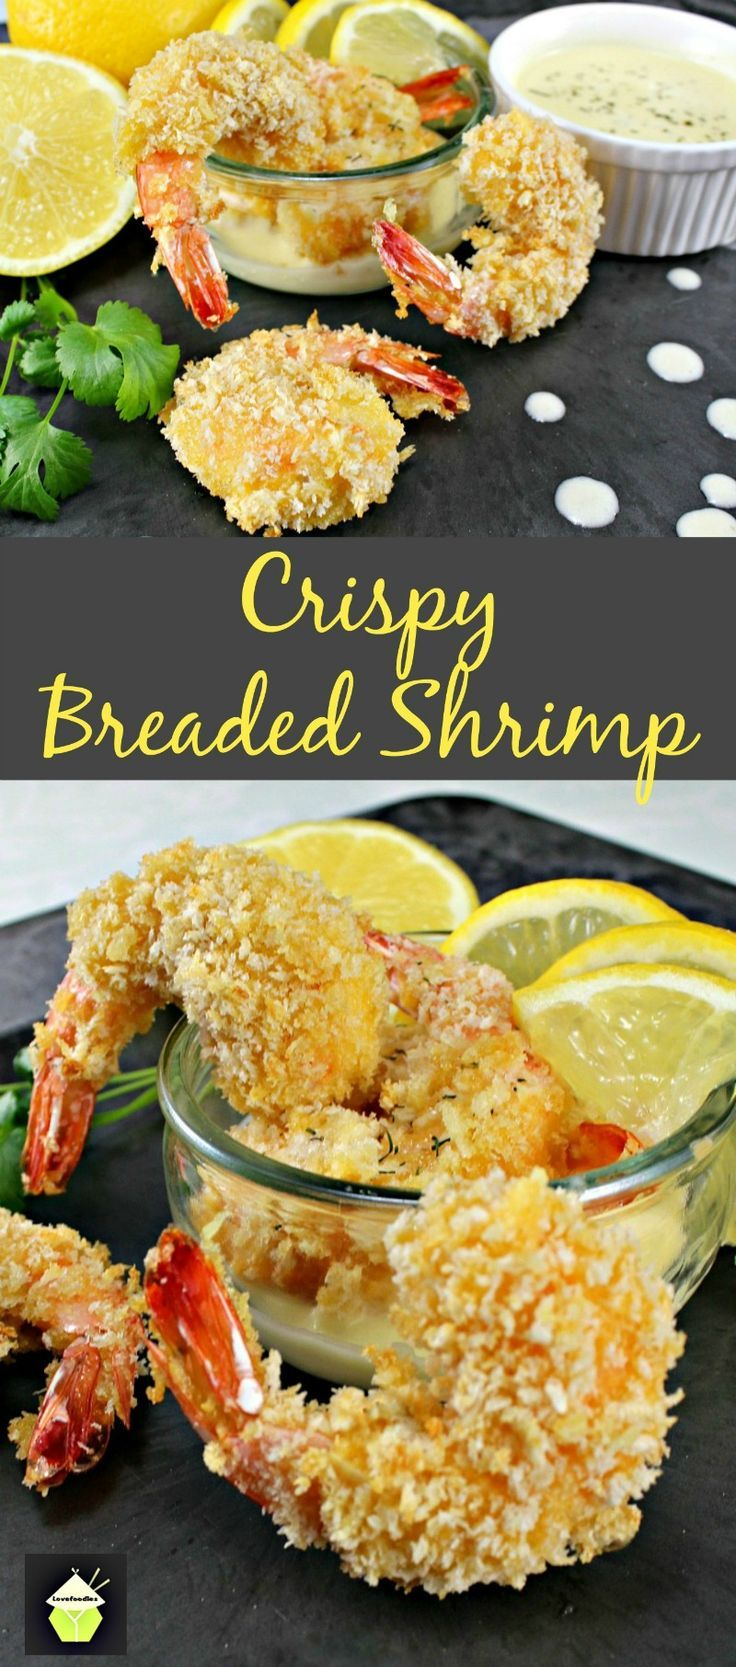 Want sushi but don't want to go out to get it? Cook up ...   Breaded Shrimp Dinner Ideas